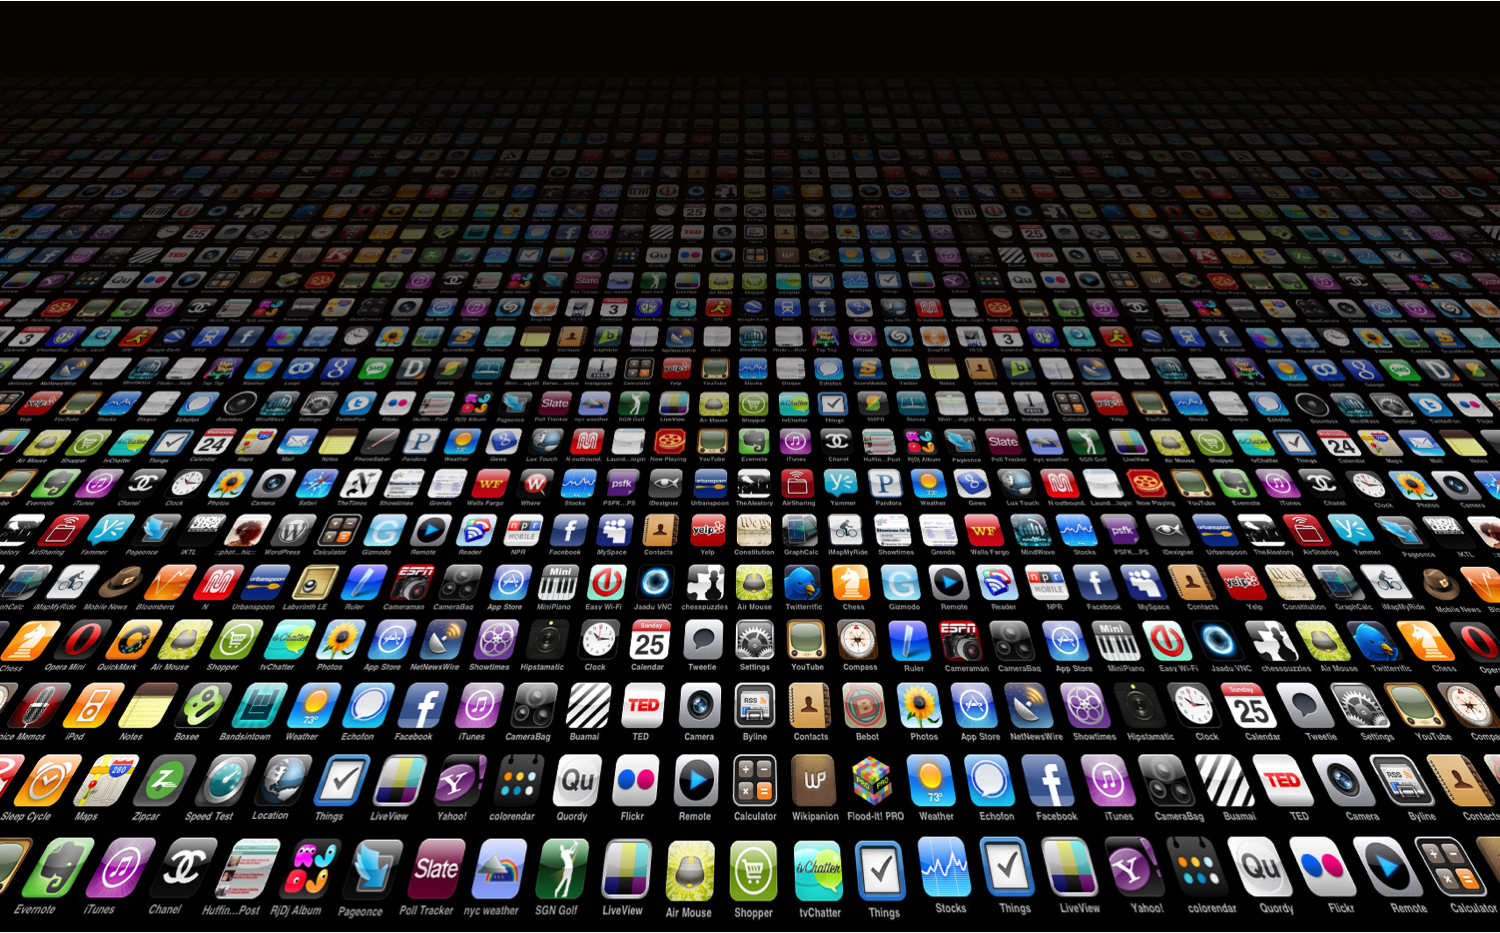 Top 5 Innovative Yet Intriguing Apps from 2013 - Image 1